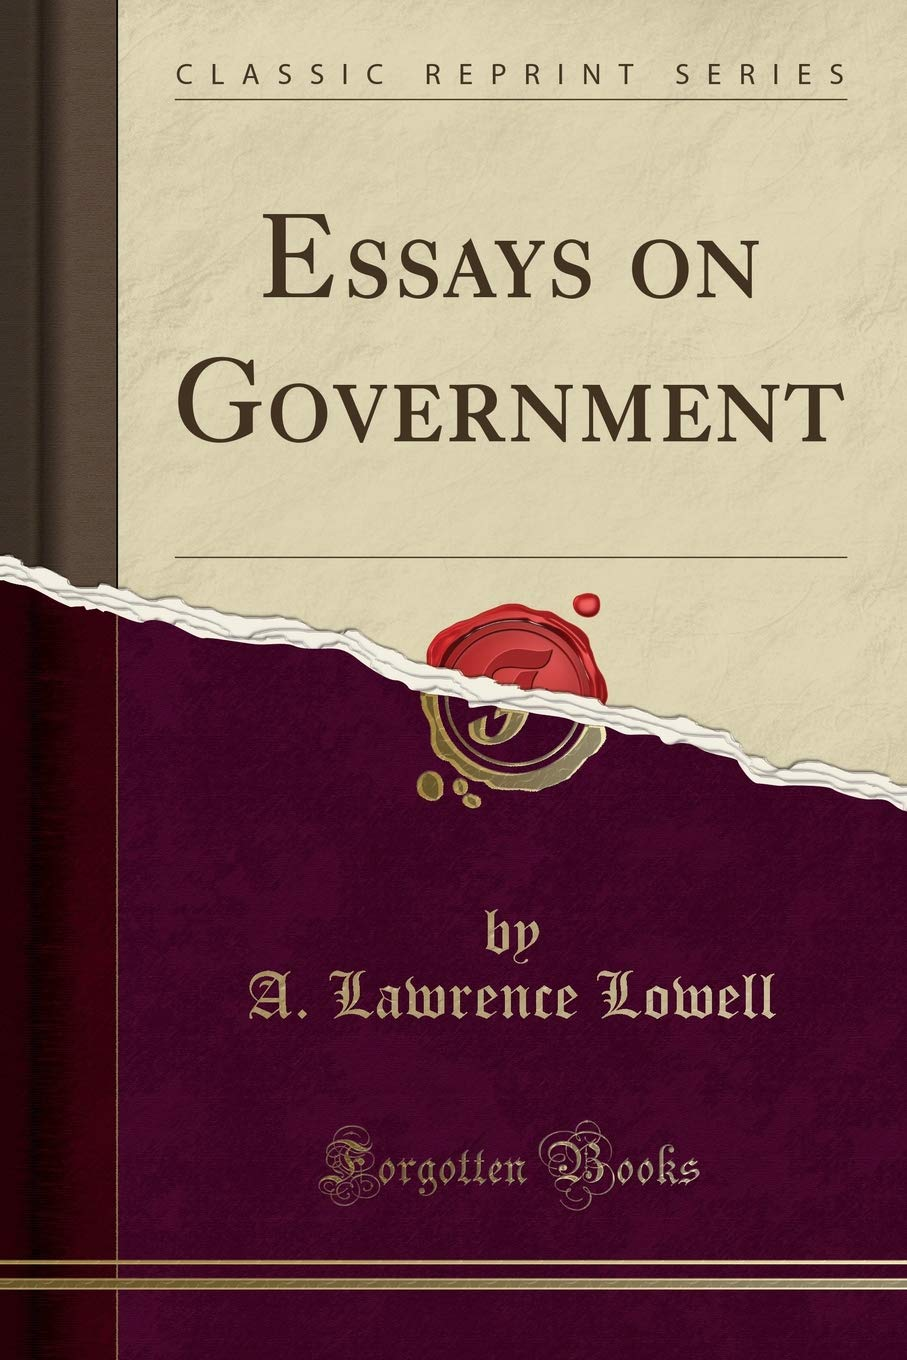 essays on government classic reprint a lawrence lowell  essays on government classic reprint paperback  january